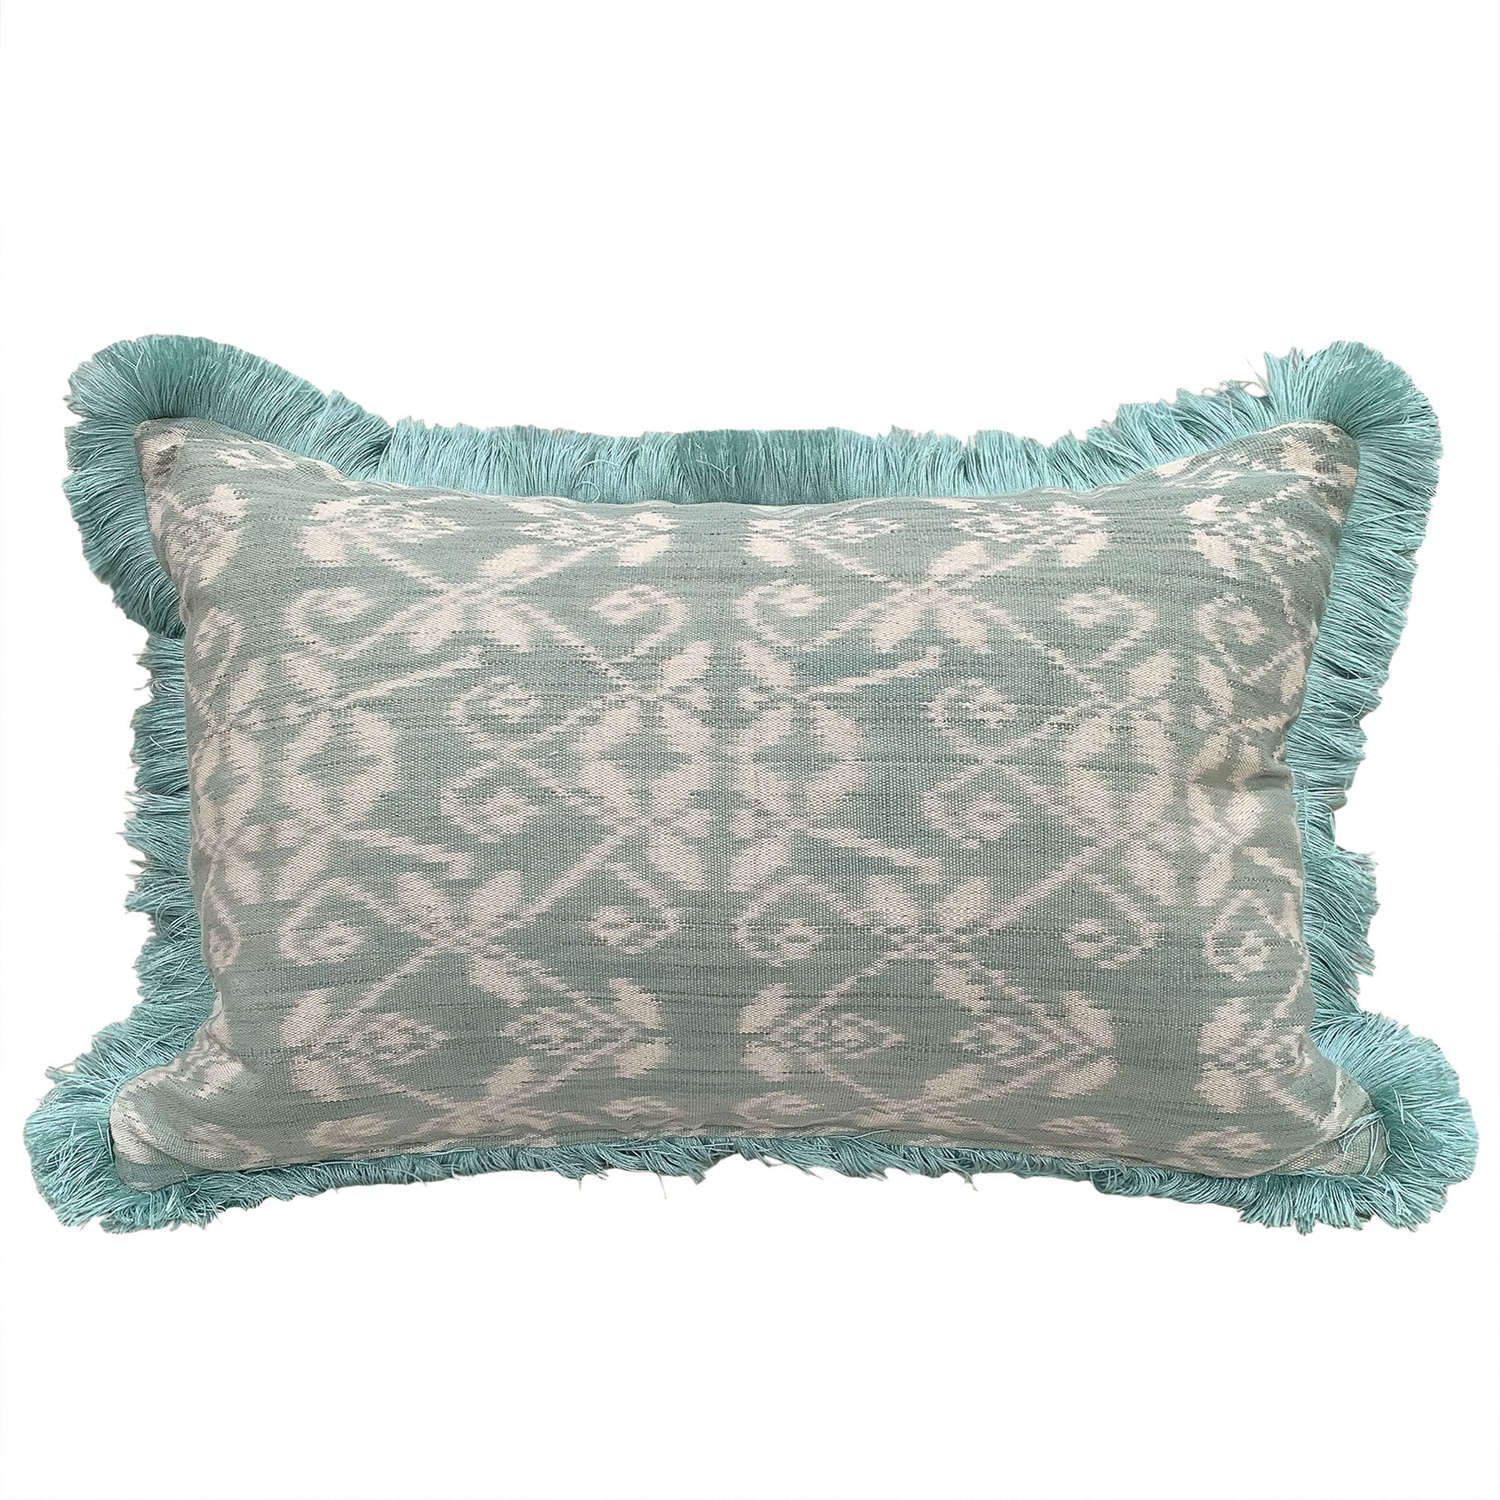 Rote ikat cushions with fringe trim